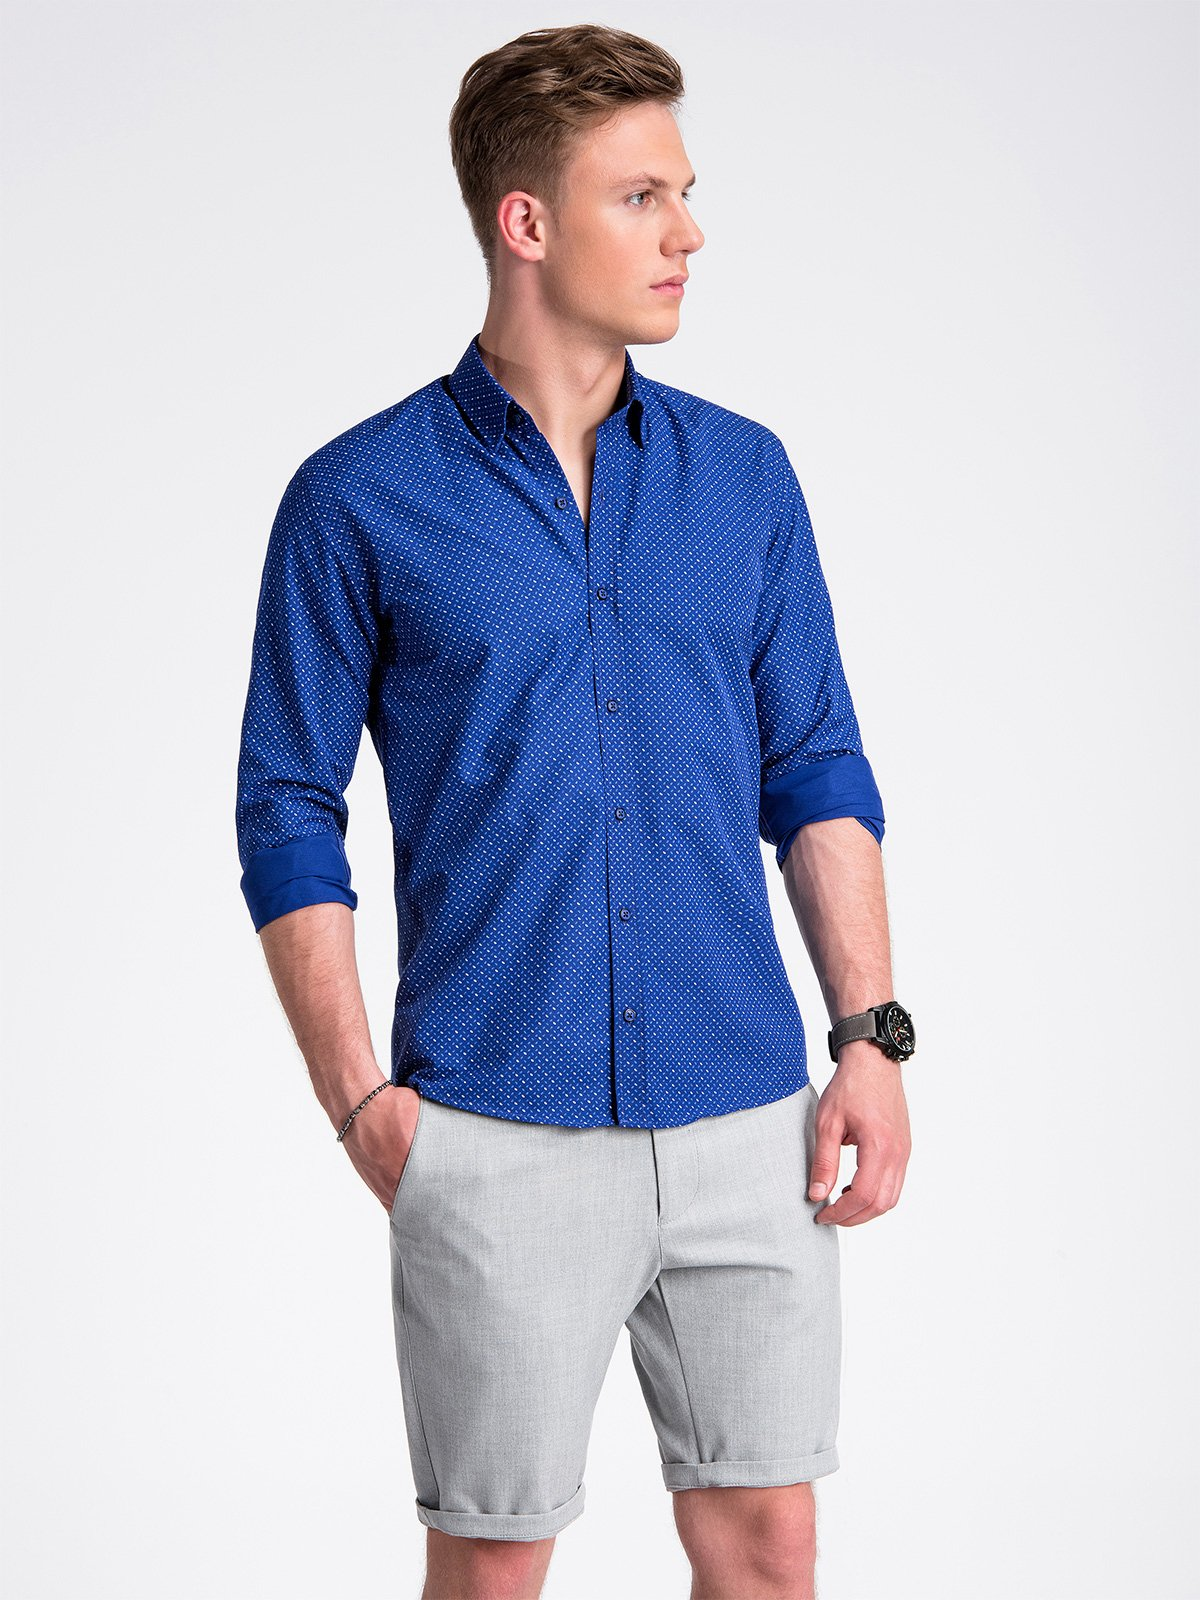 Ombre Clothing Men's shirt with short sleeves K477